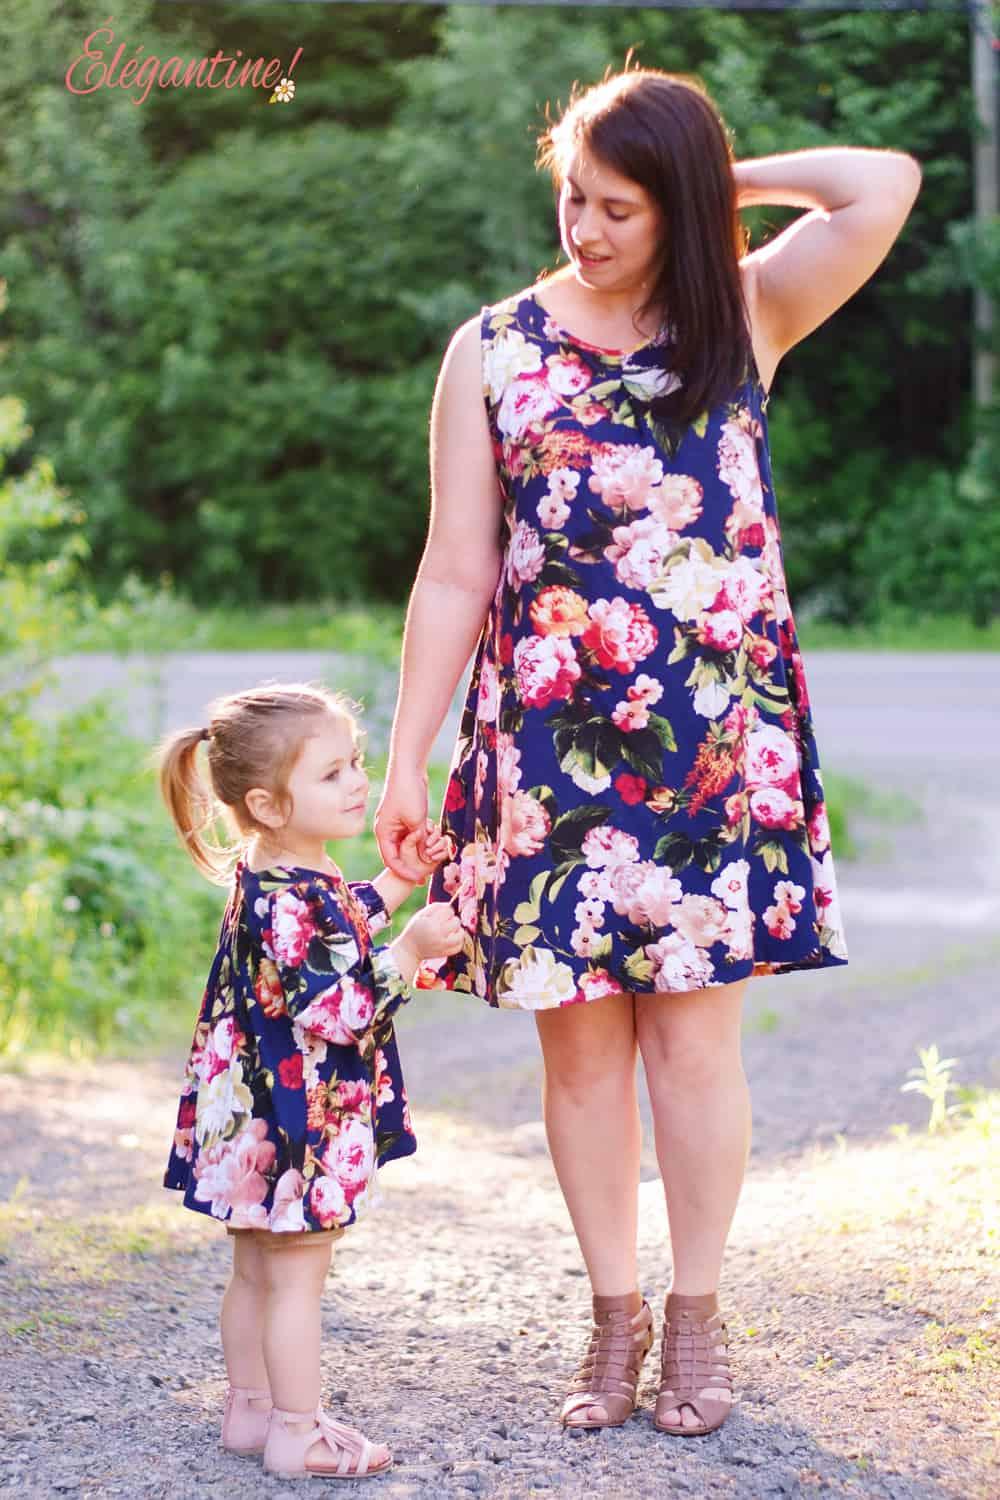 The St. Tropez Swing top sewing pattern is a pretty, chic, comfortable, and versatile swing top and dress sewing pattern with cut out detail in the back.